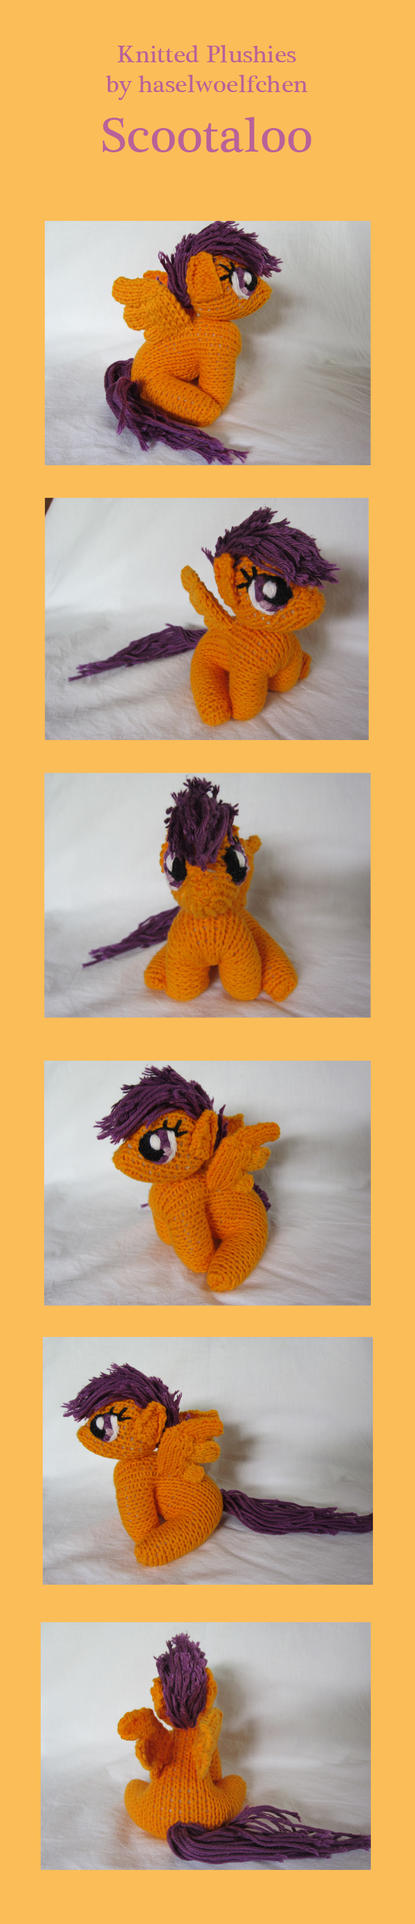 Knitted Plushies - Scootaloo by haselwoelfchen